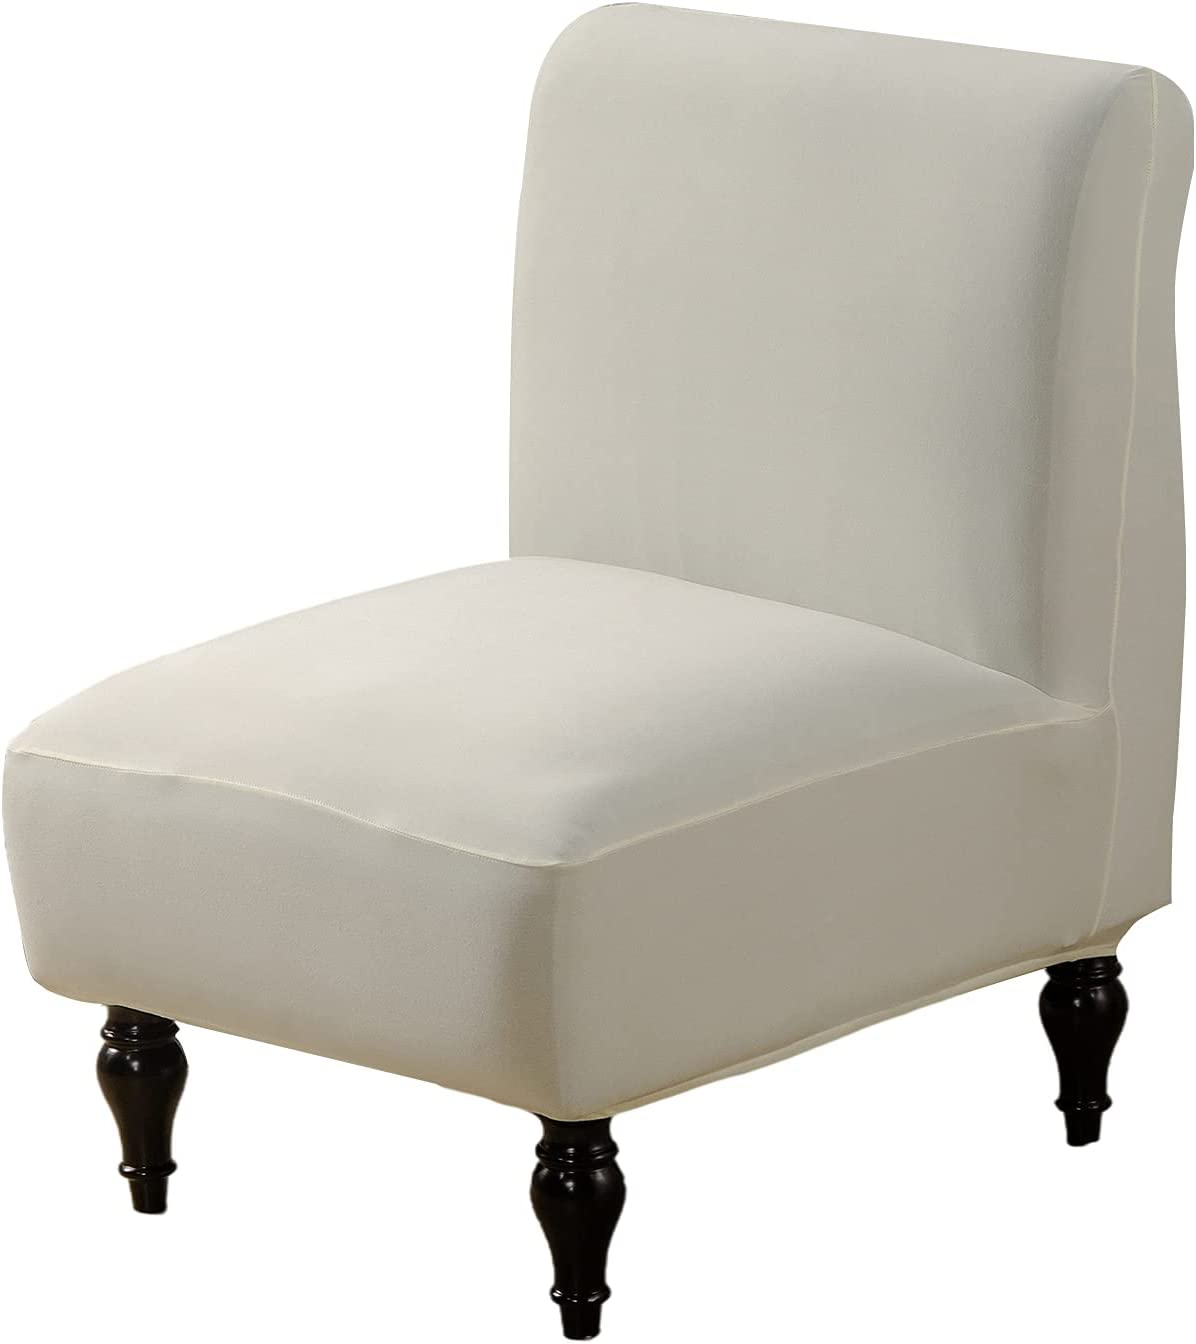 Cheap SALE Start CRFATOP Armless Chair Cover Stretch Slipcover Detroit Mall Acce Solid